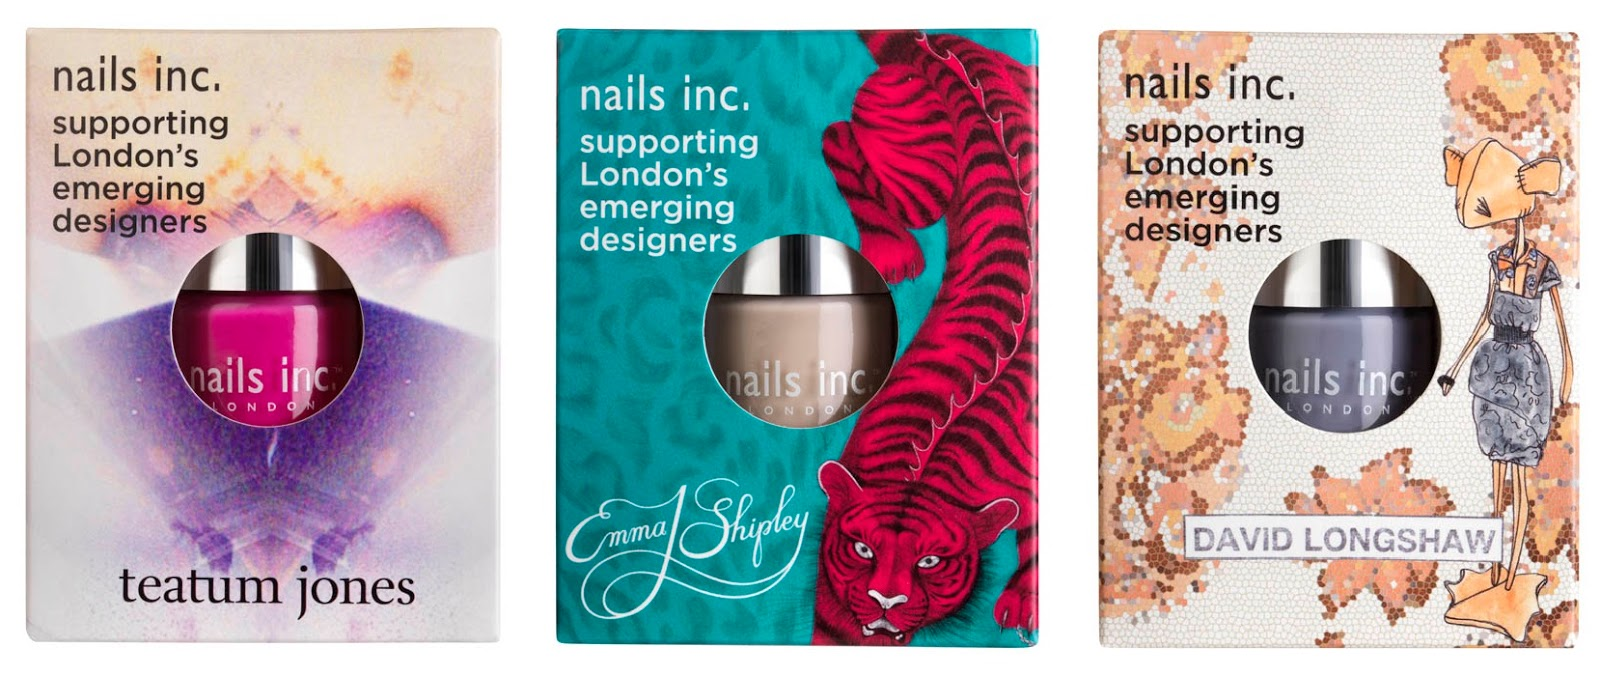 Nails Inc Emerging British Designer Collaboration